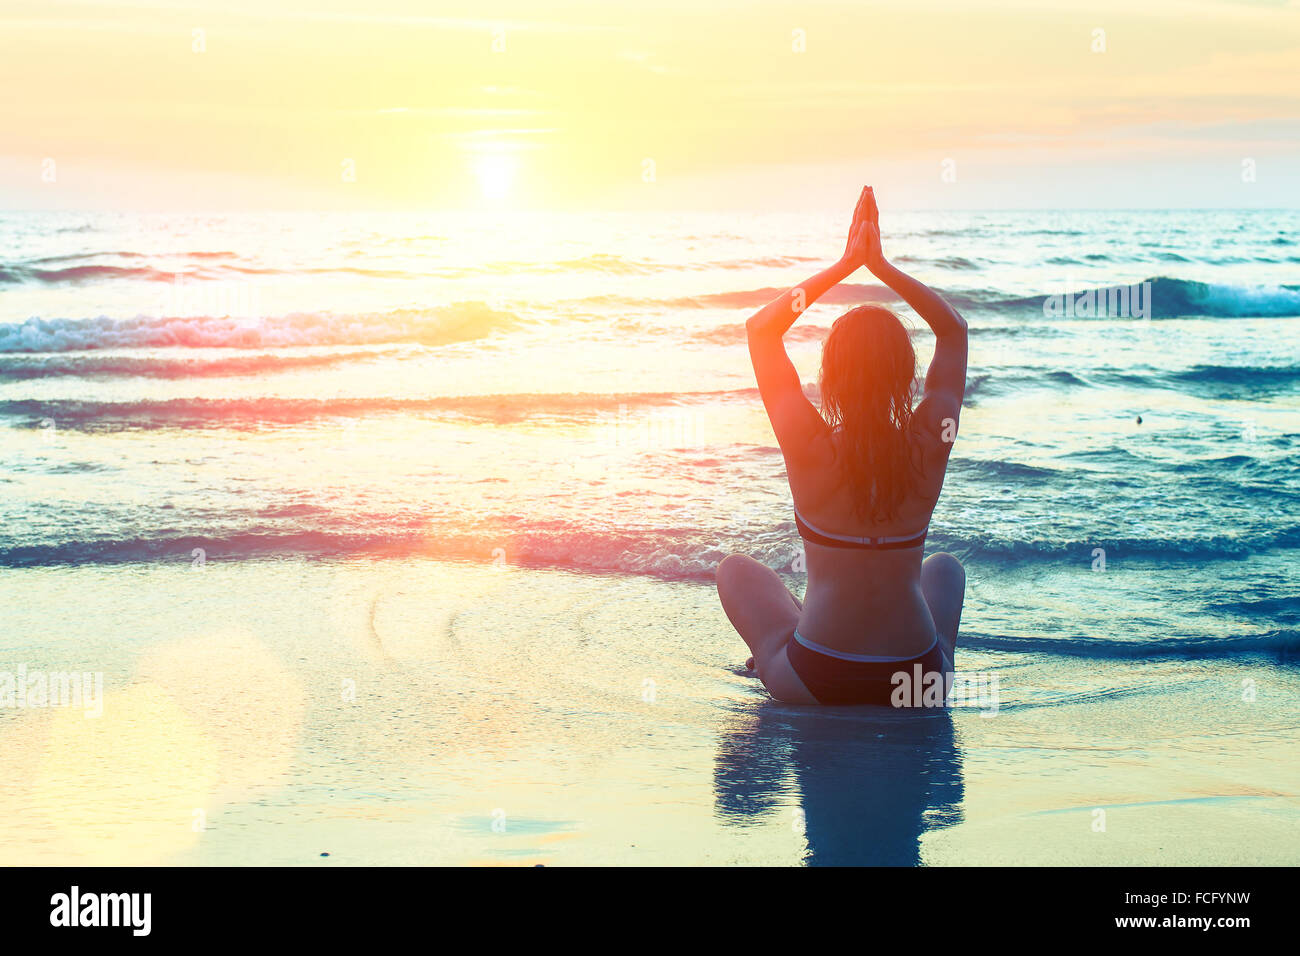 Silhouette of a beautiful yoga woman at sunset in surreal colors. - Stock Image